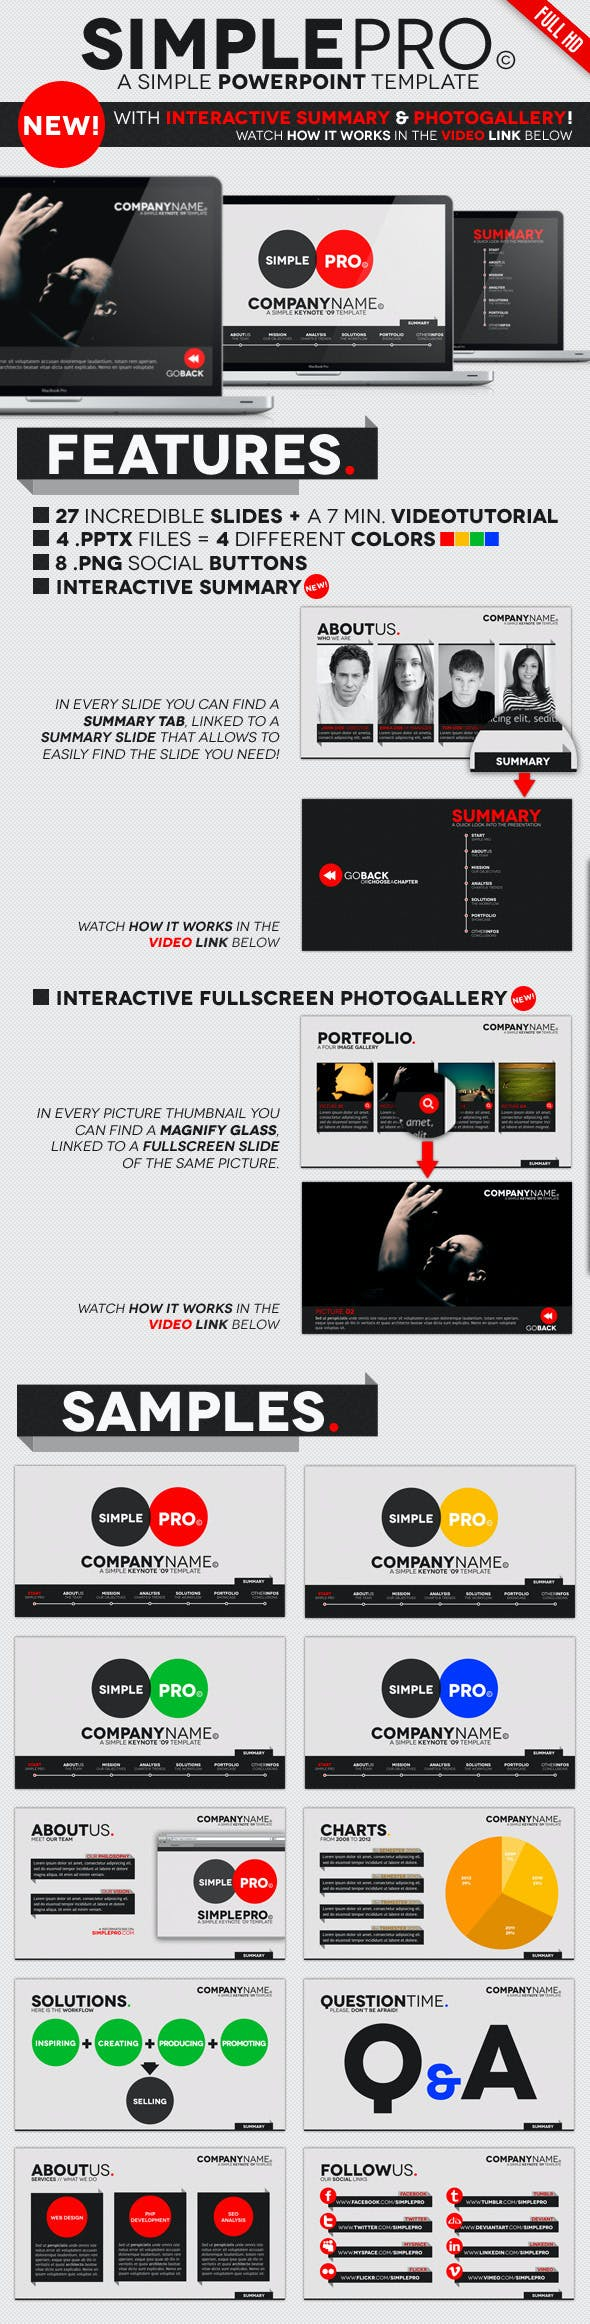 simple pro powerpoint interactive template by opendept graphicriver